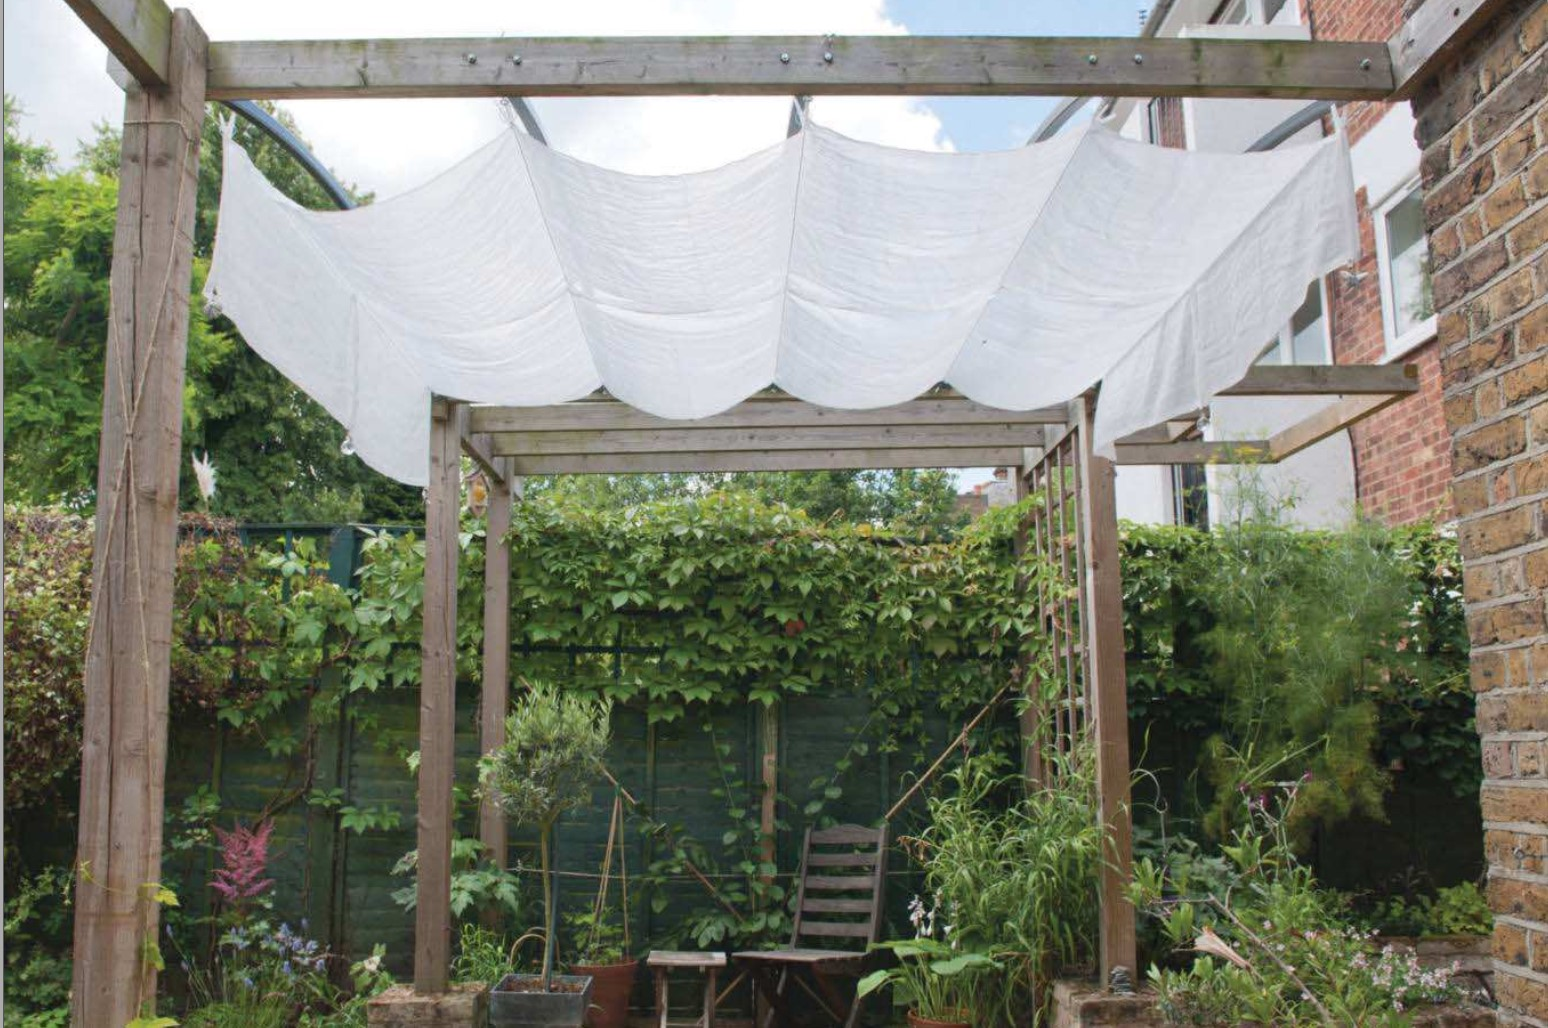 DIY Patio Canopy: How To Build A Simple & Cheap DIY Canopy